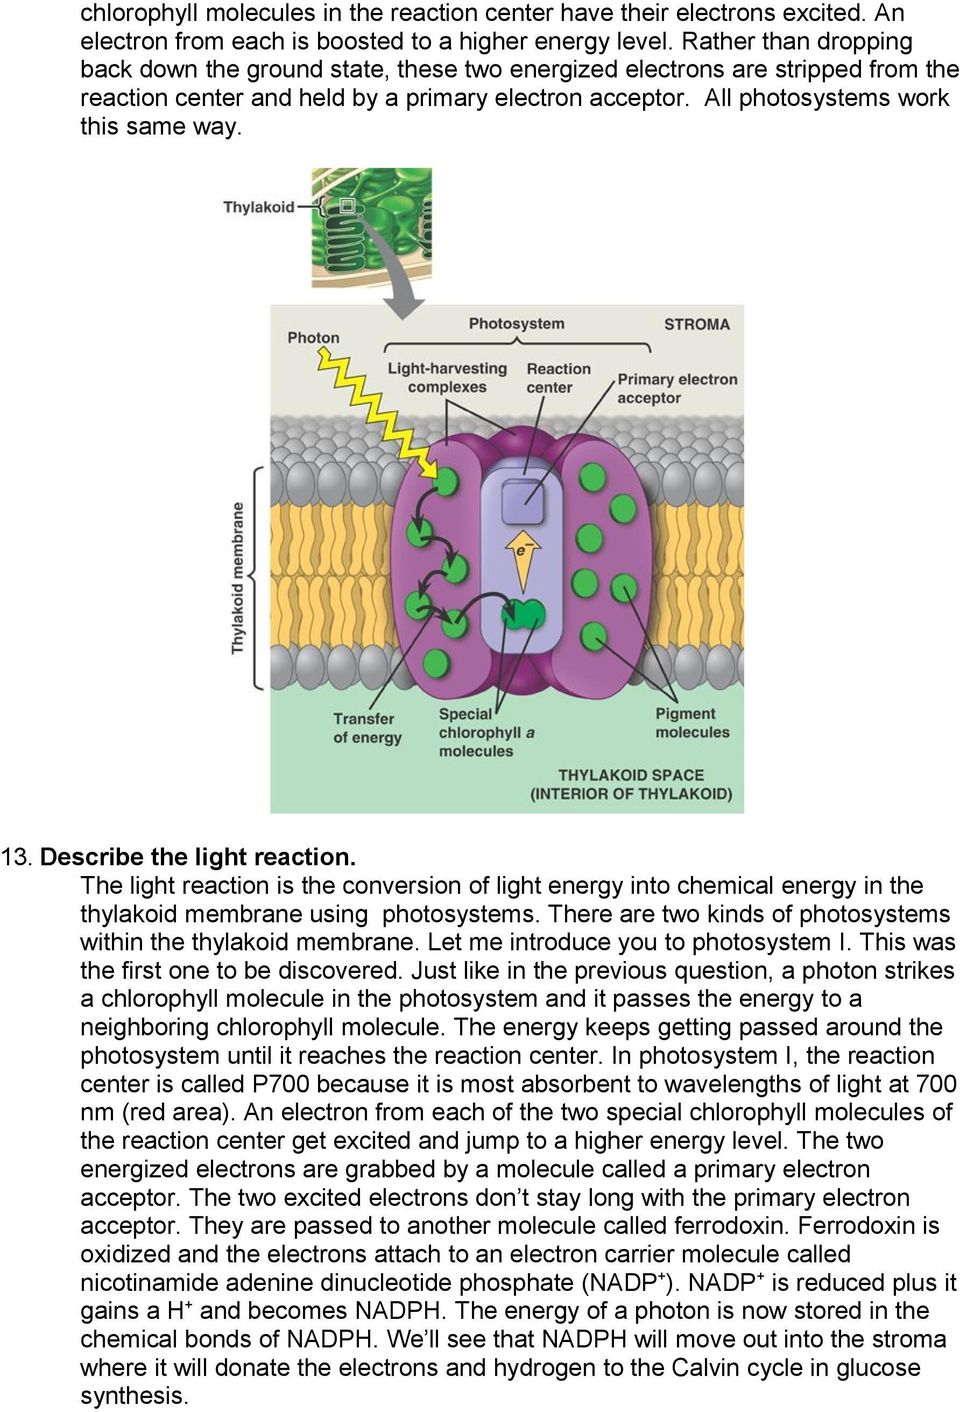 Describe the light reaction. The light reaction is the conversion of light energy into chemical energy in the thylakoid membrane using photosystems.